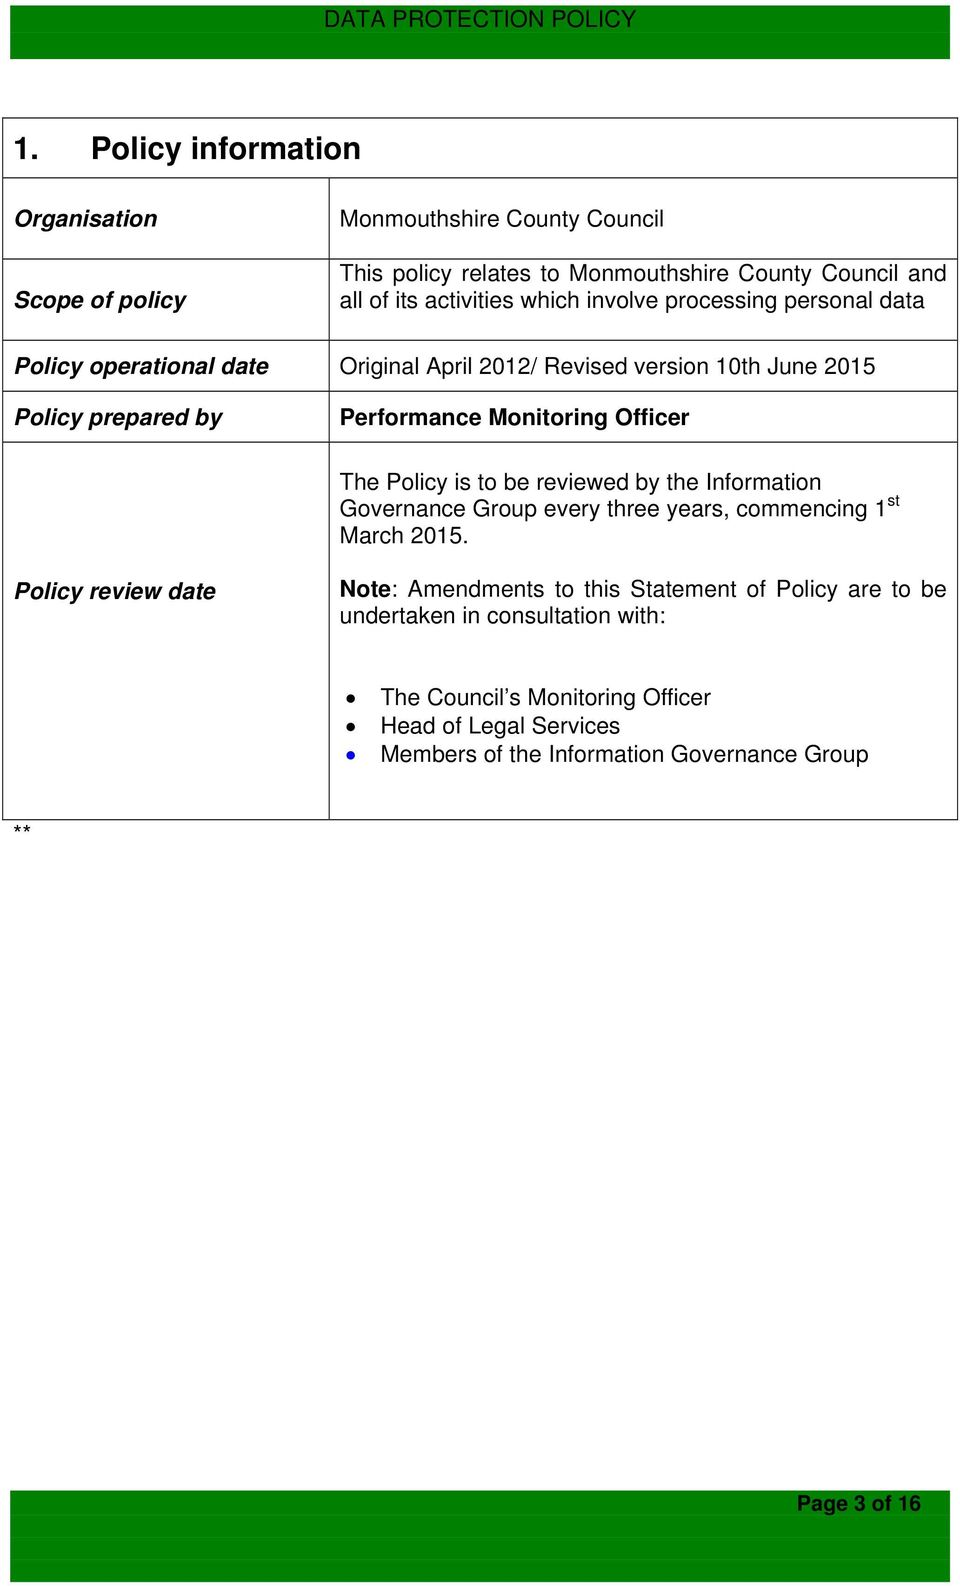 Policy is to be reviewed by the Information Governance Group every three years, commencing 1 st March 2015.